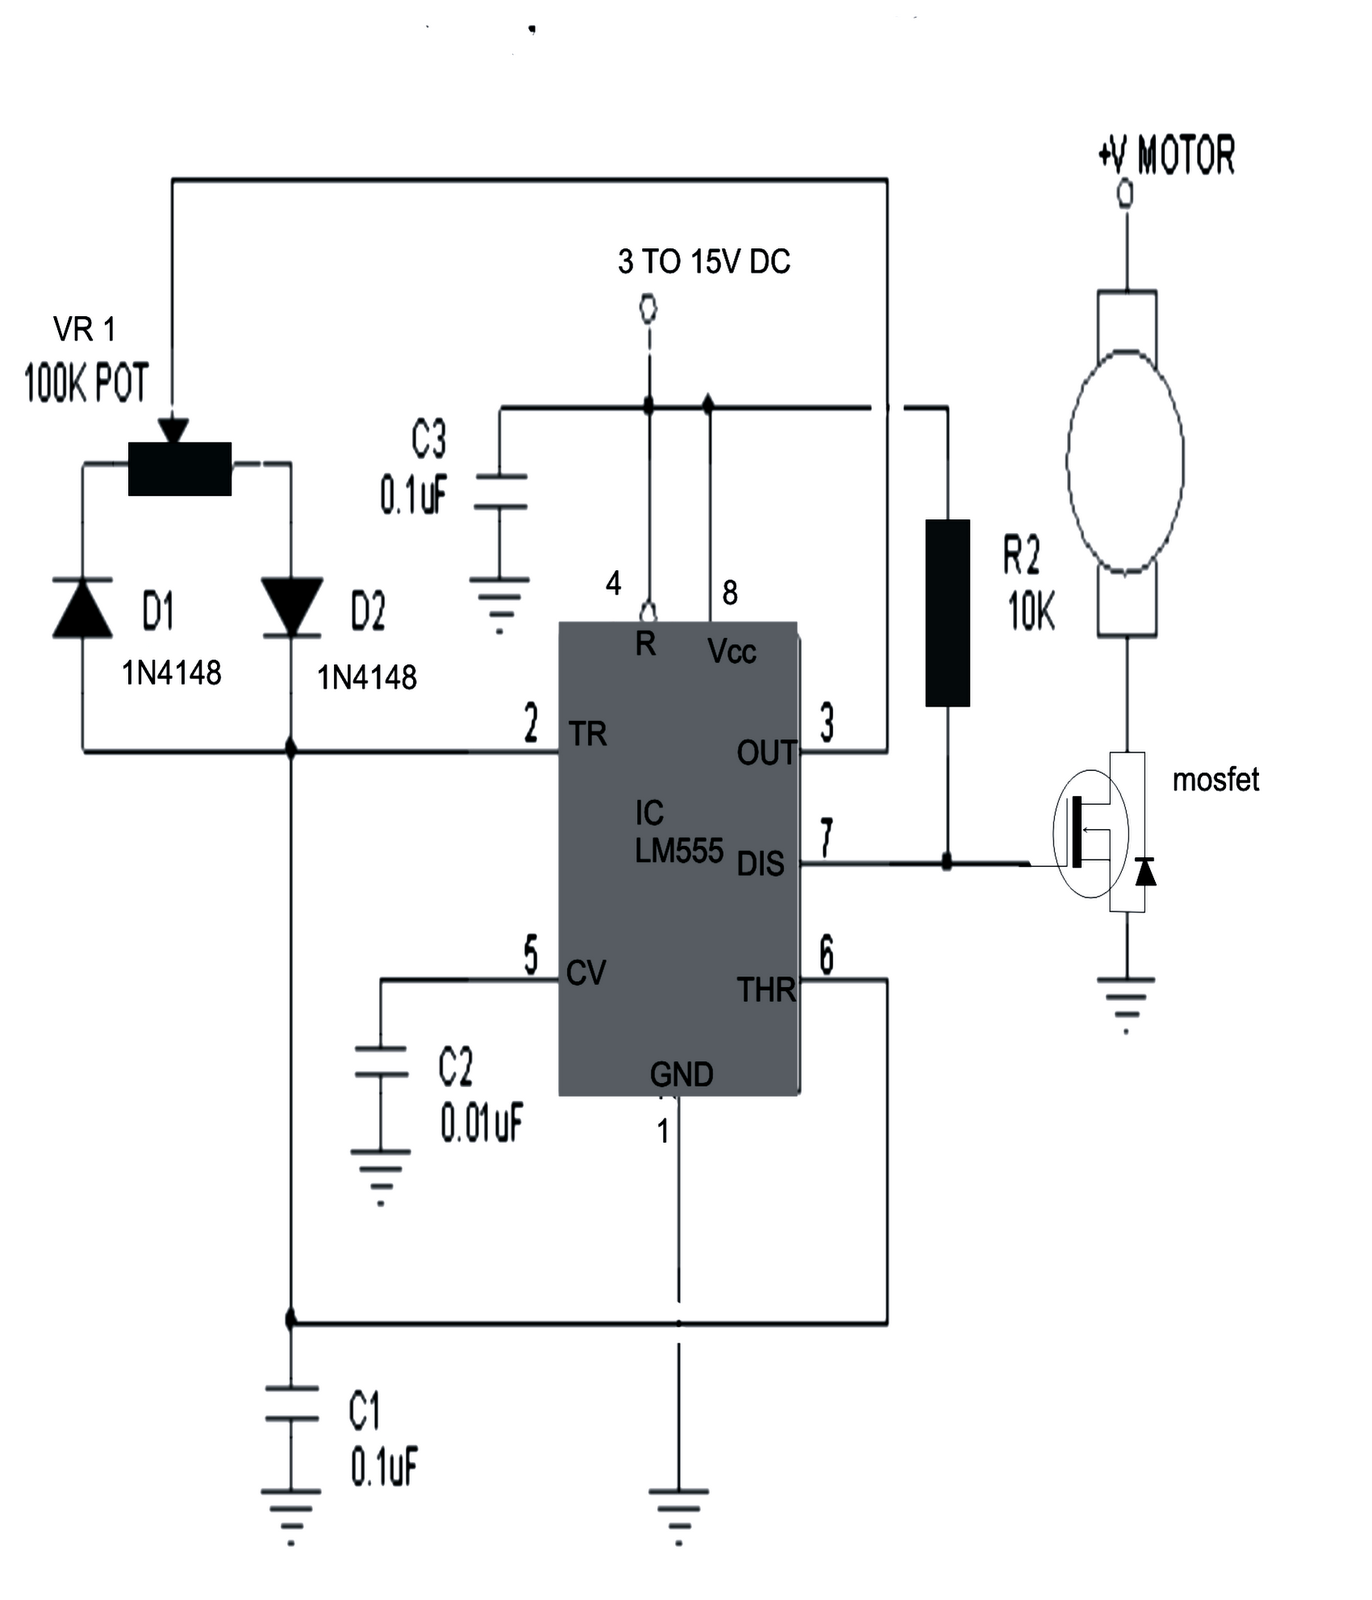 simple dc motor speed controller circuit electronic circuit projects the diagram of the proposed simple dc motor speed controller circuit can be seen below